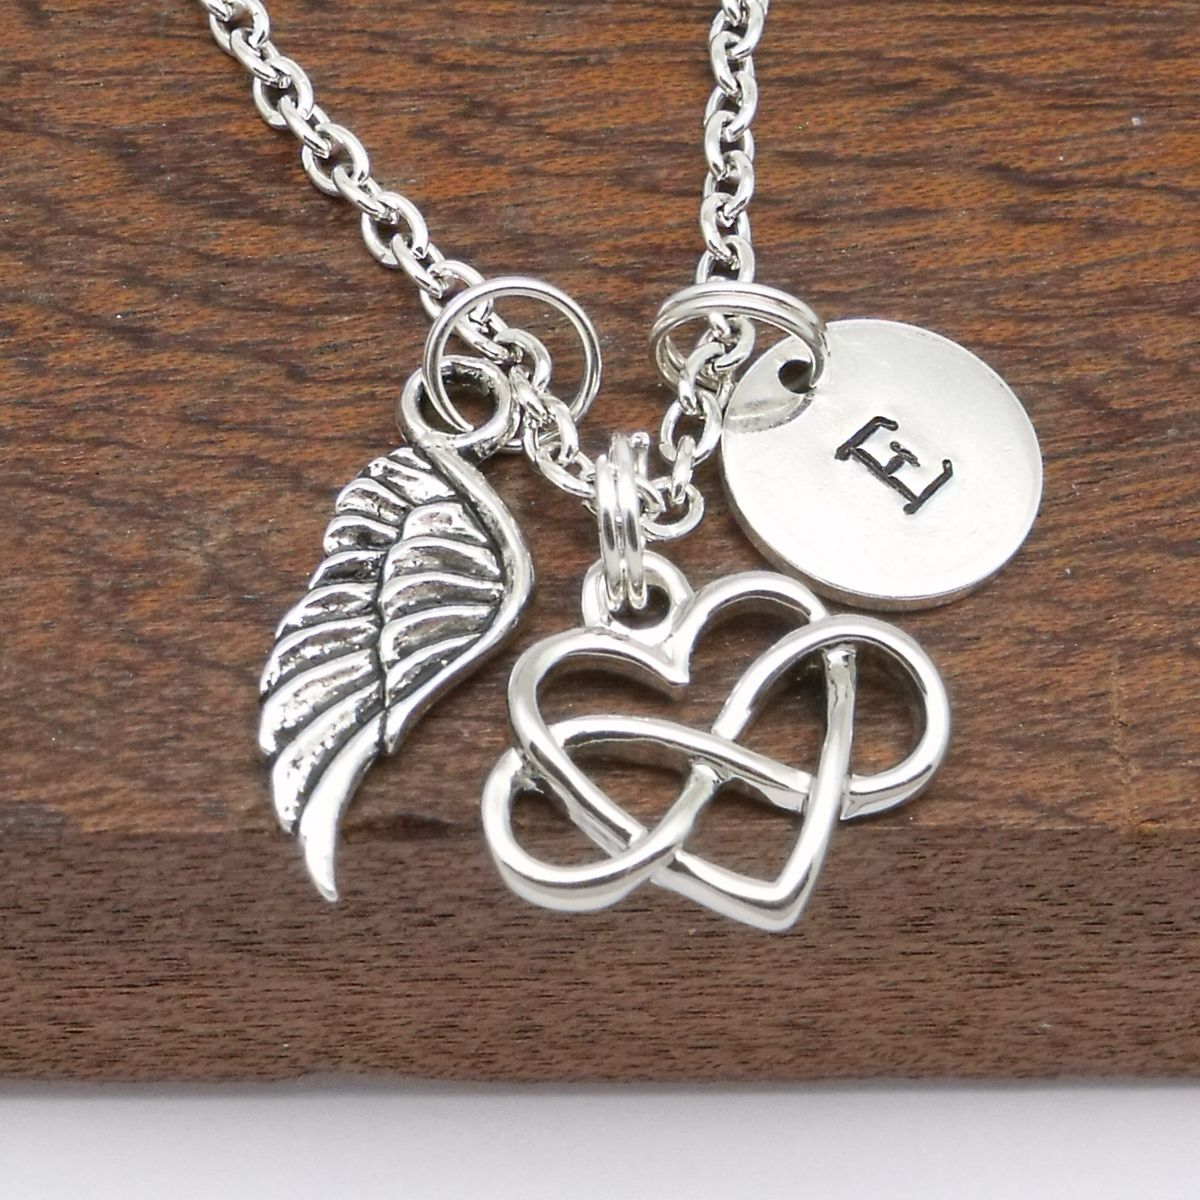 memorial in of jewelry stamped necklace angel pendant memory personalized silver present products mama jenny wing hand proud